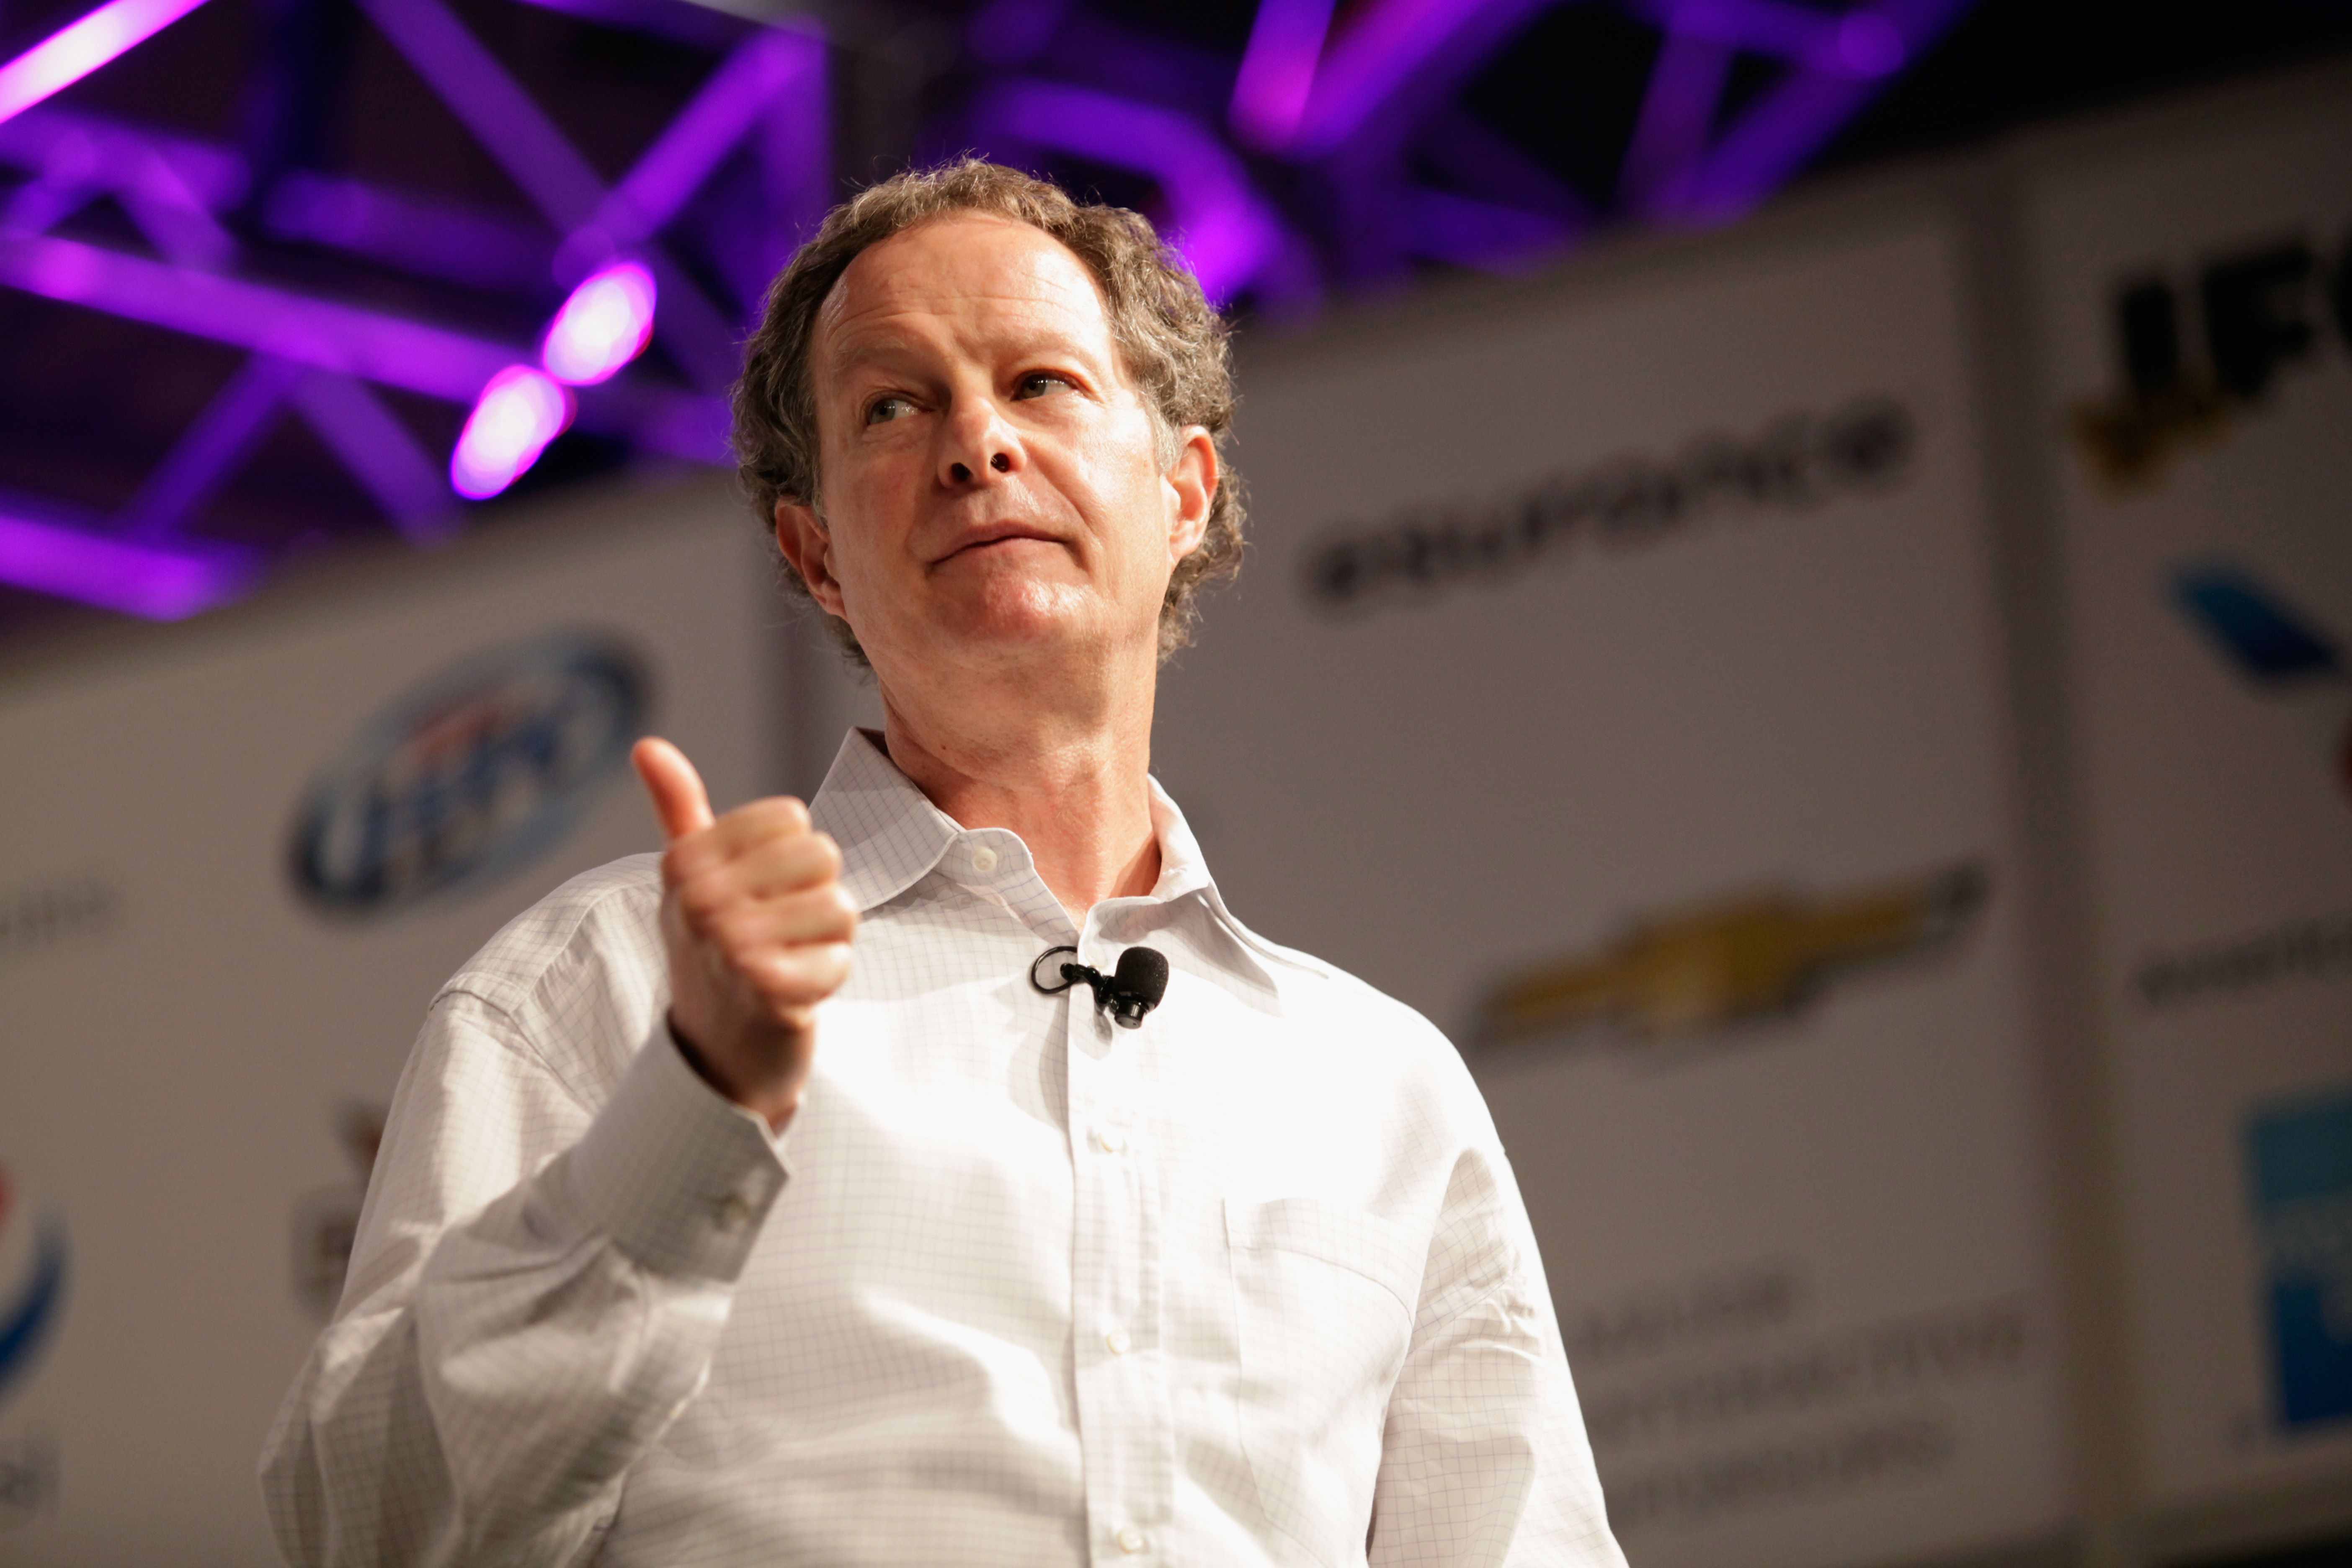 CEO of Whole Foods Market John Mackey giving a thumbs up